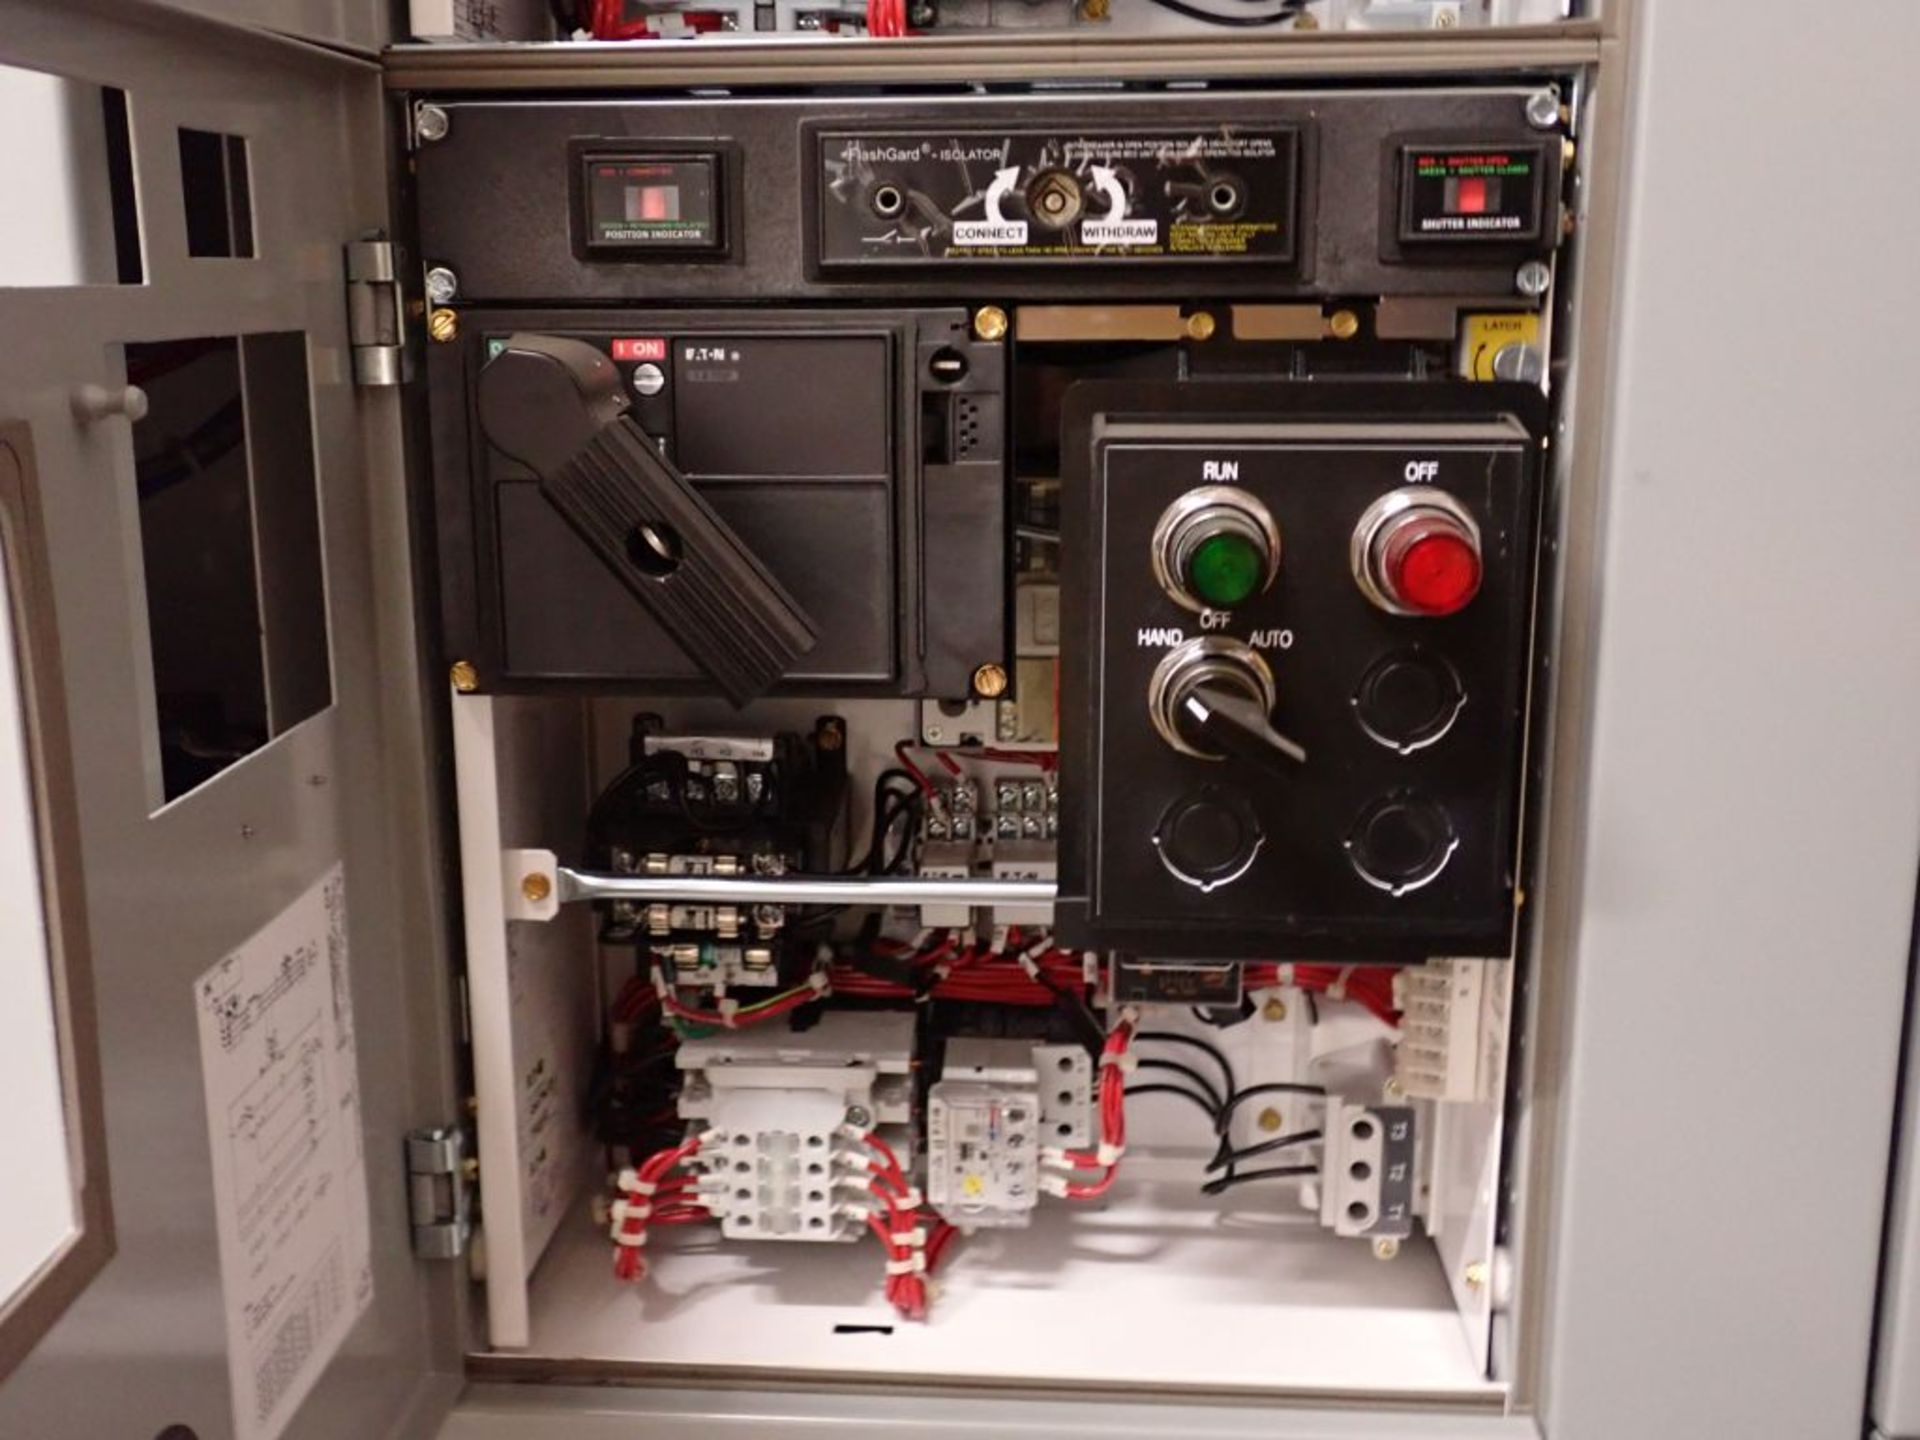 Eaton Freedom 2100 Series Motor Control Center | (11) F206-30A-10HP; (5) F206-15A-10HP; (1) SVX900- - Image 72 of 102